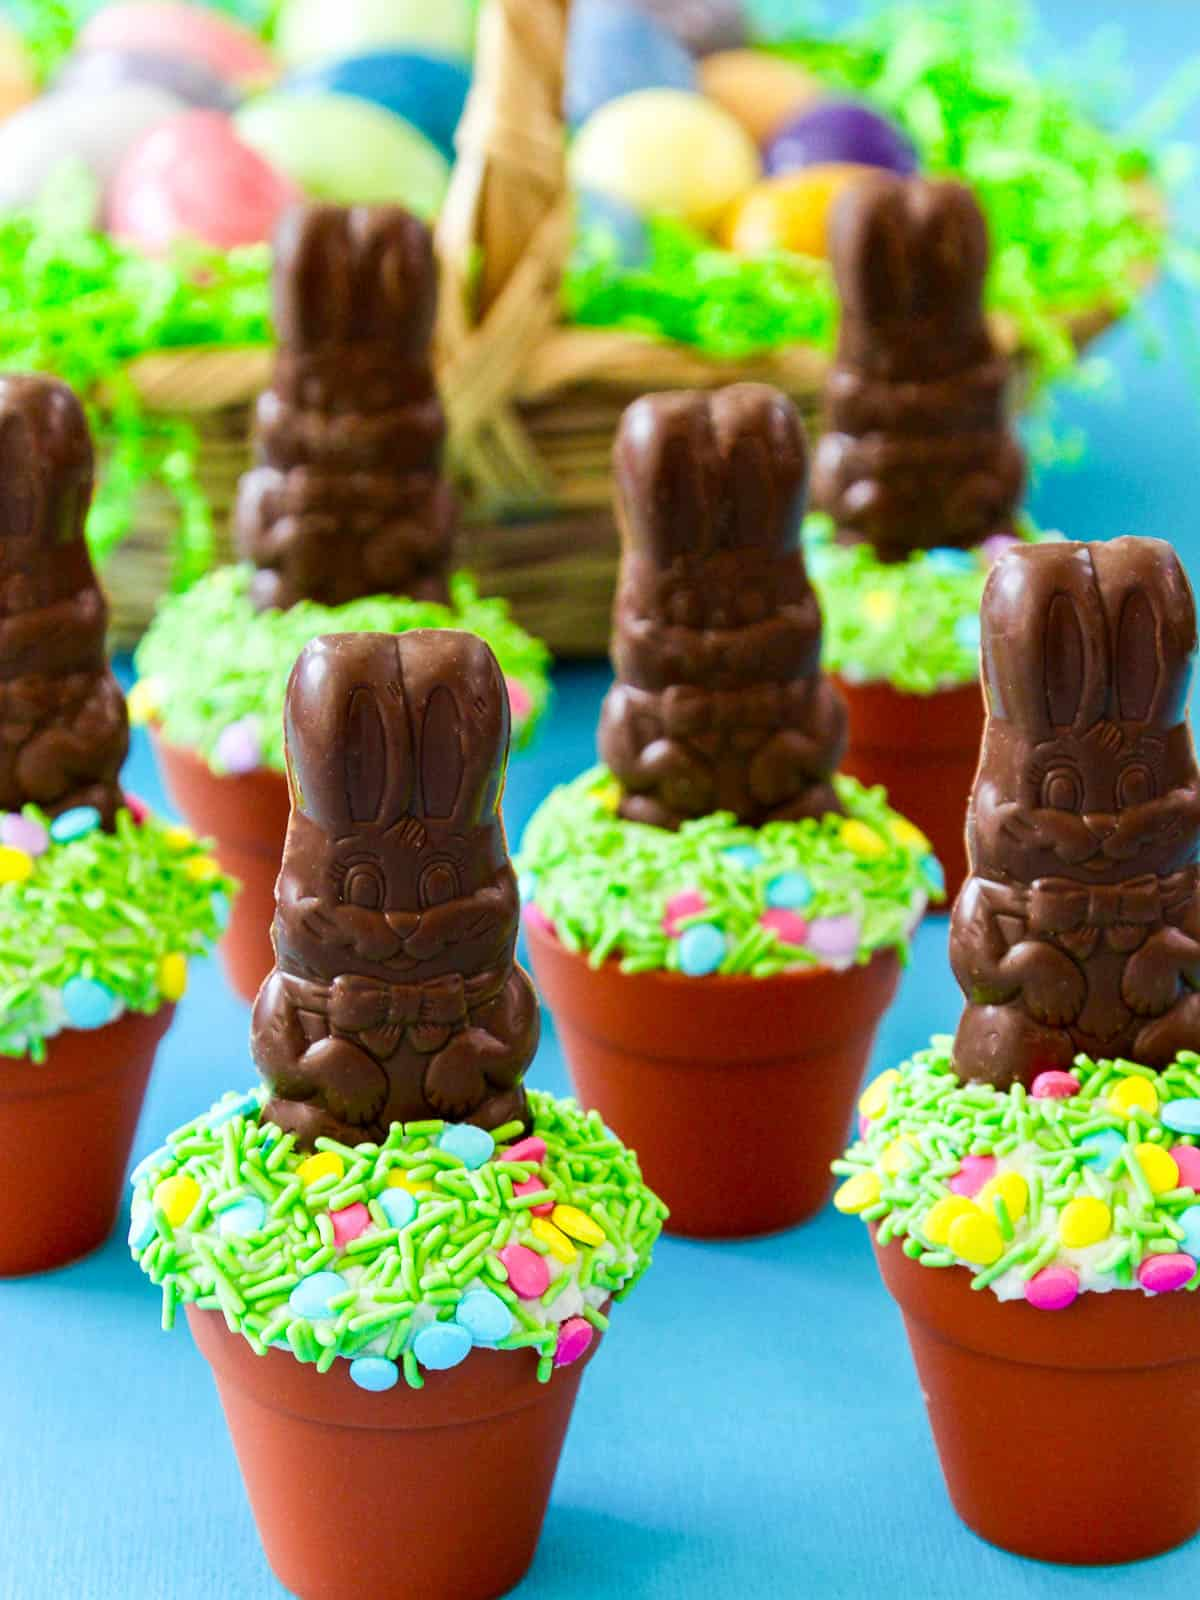 Six Easter cupcakes with milk chocolate bunnies and green sprinkles.